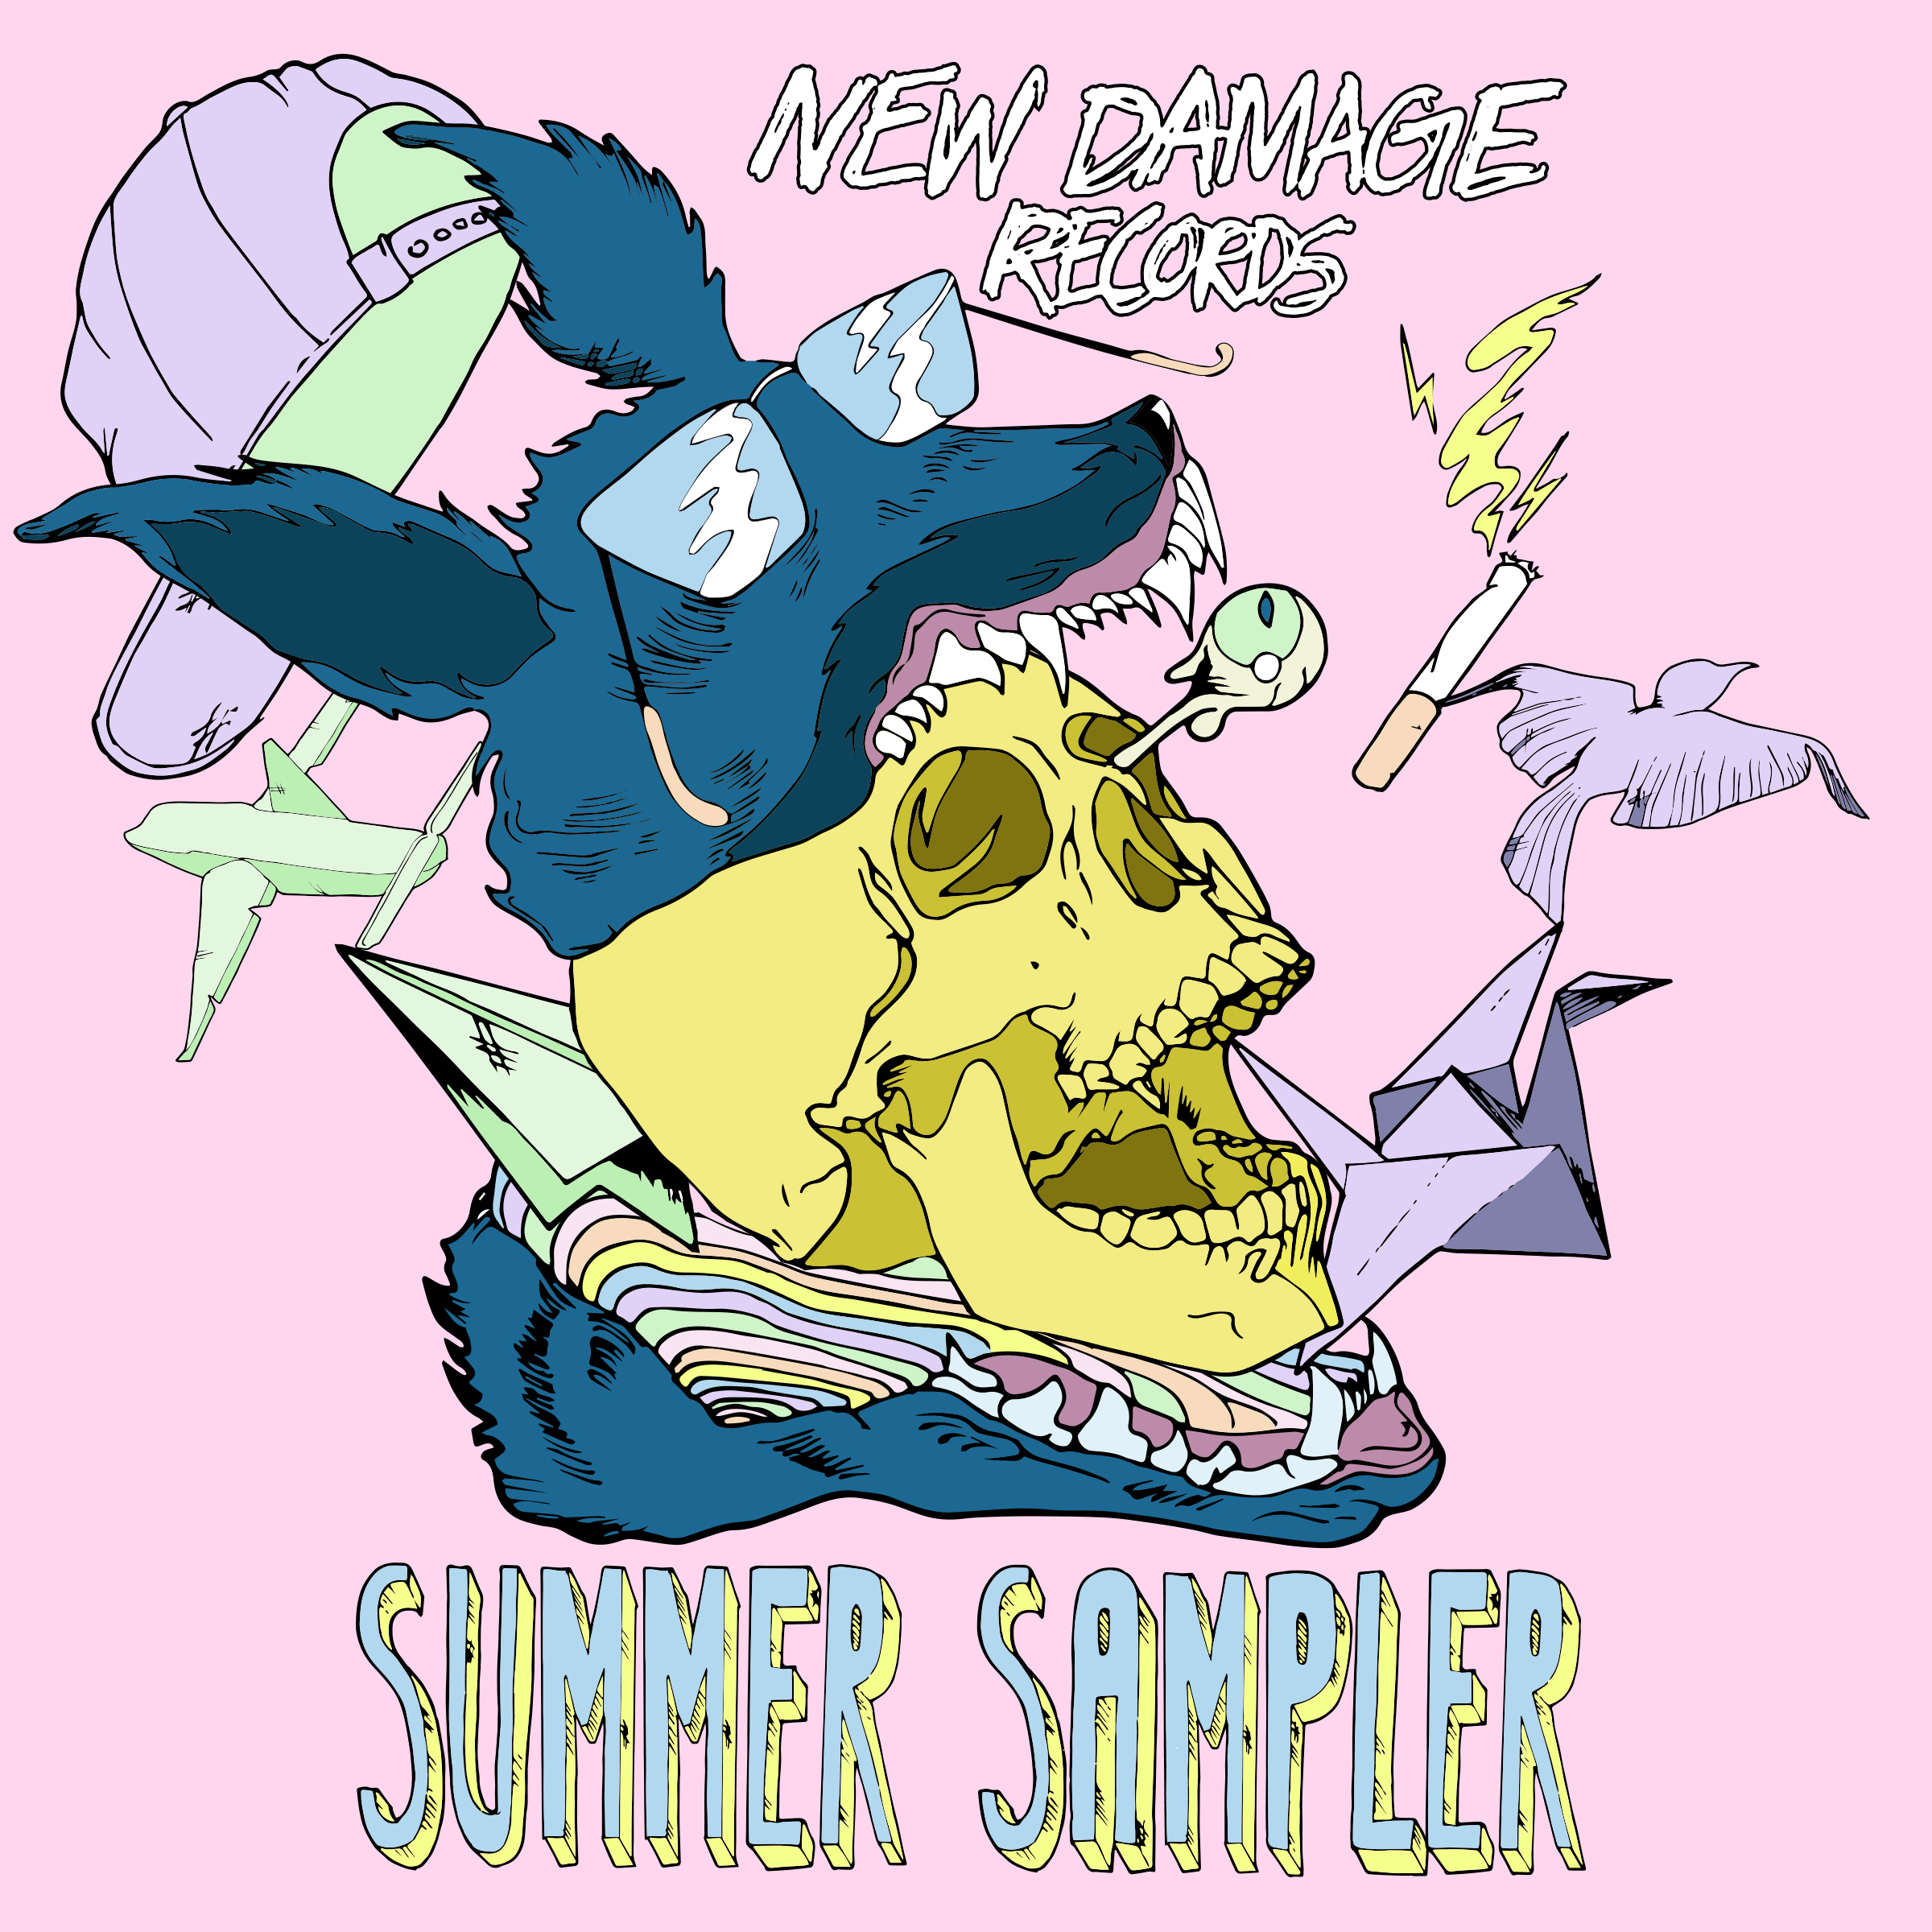 ND-SUMMERSAMPLER-UPDATE1